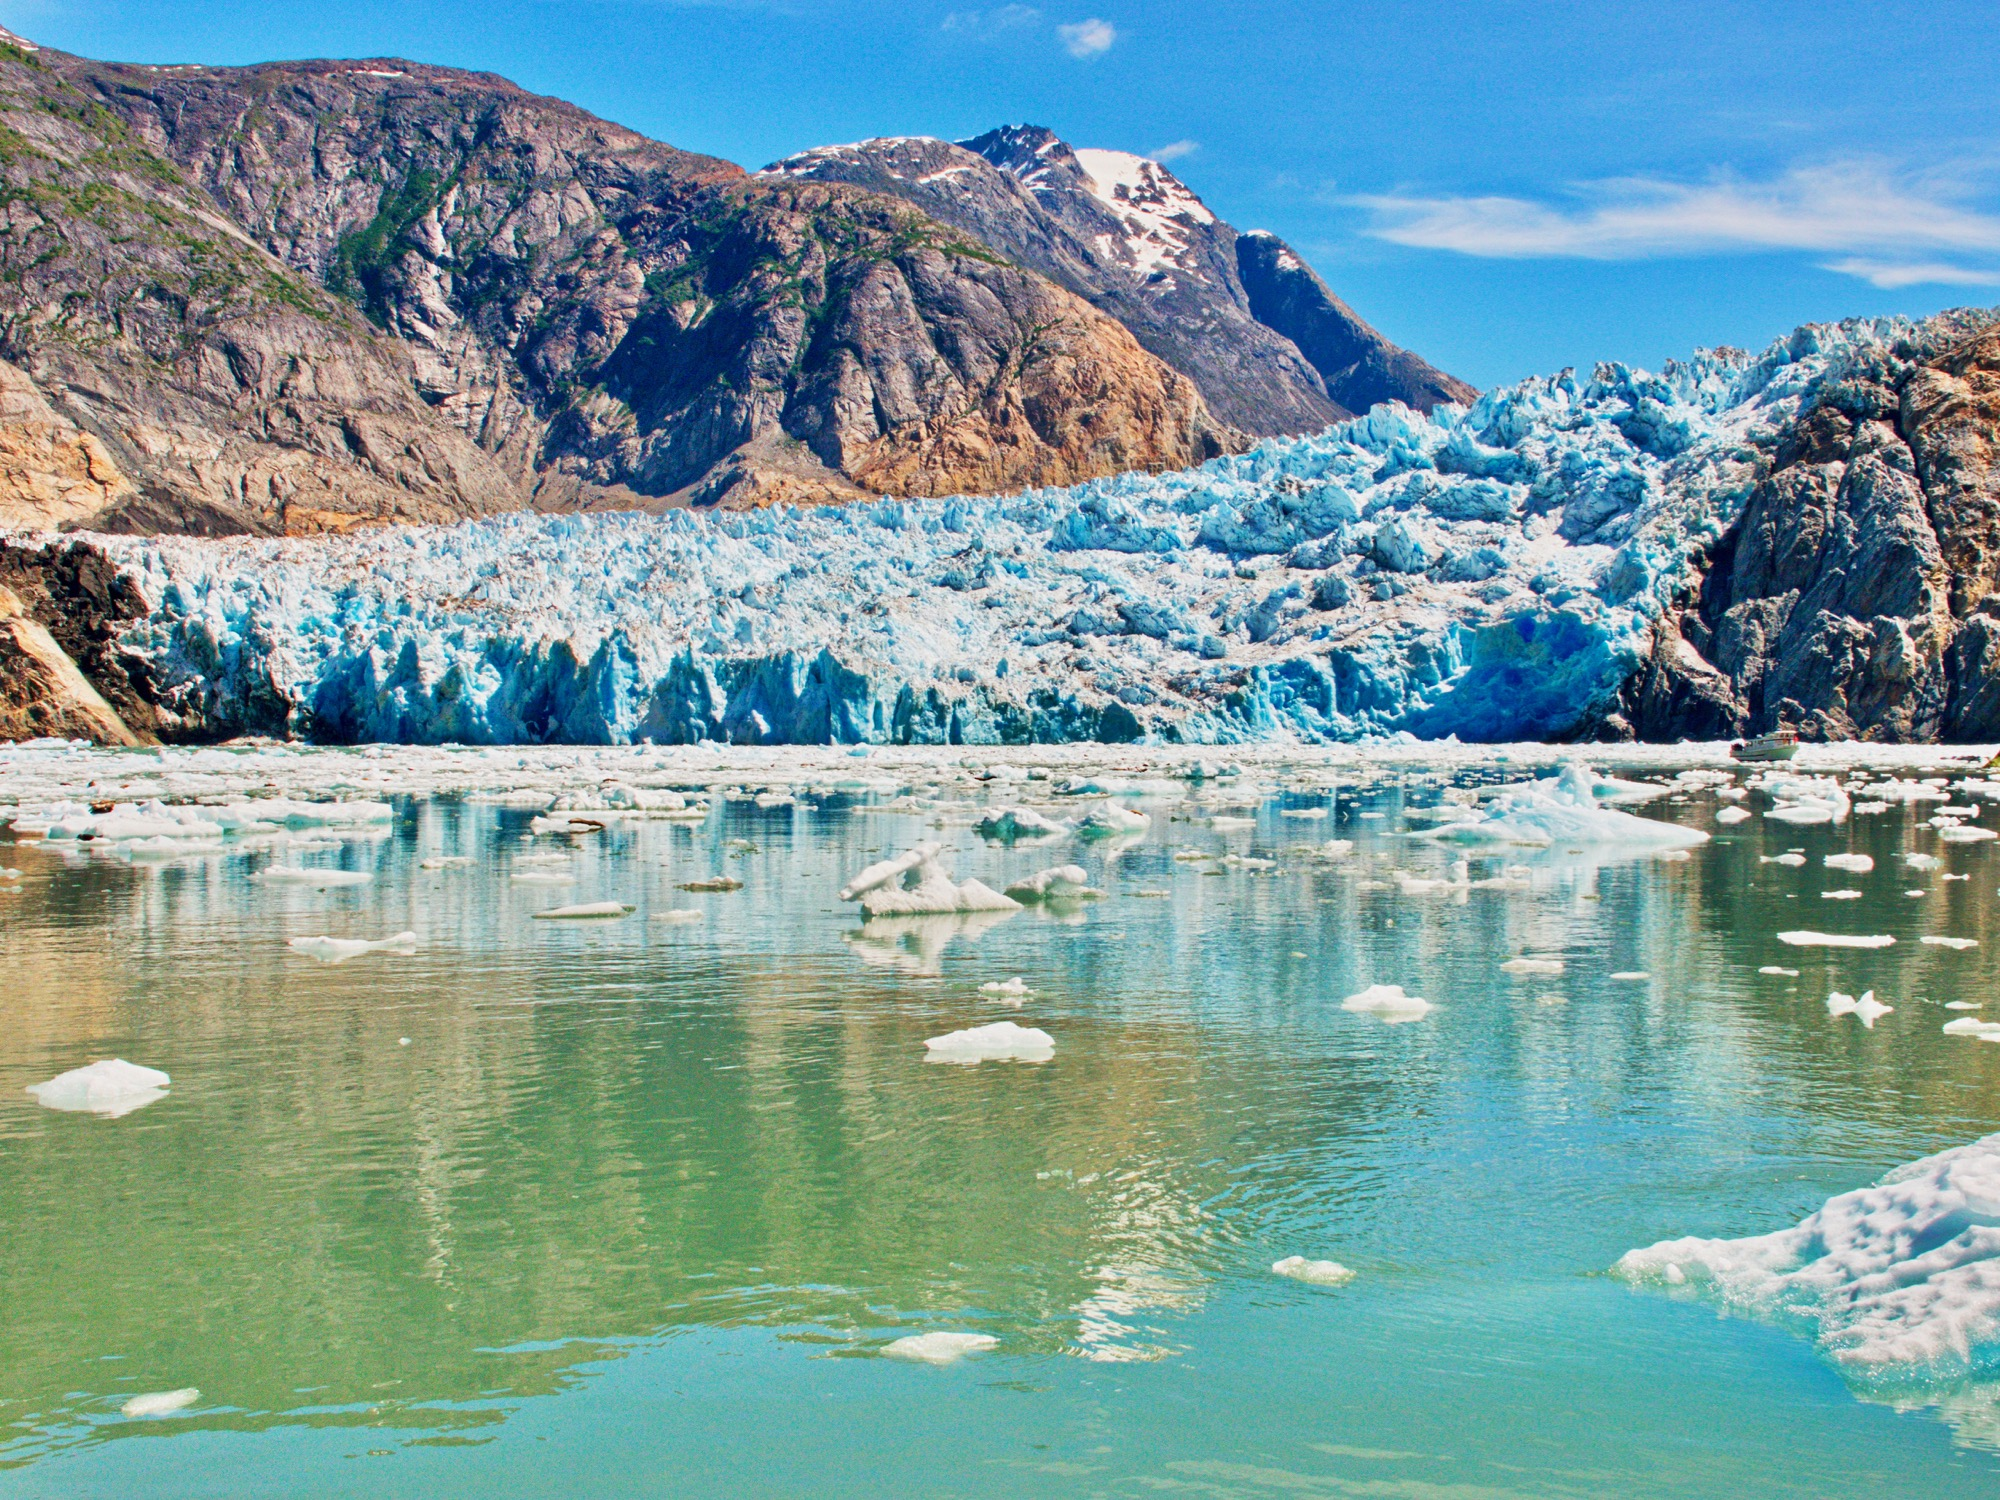 YES! Magazine: Alaska's glaciers show signs of climate change